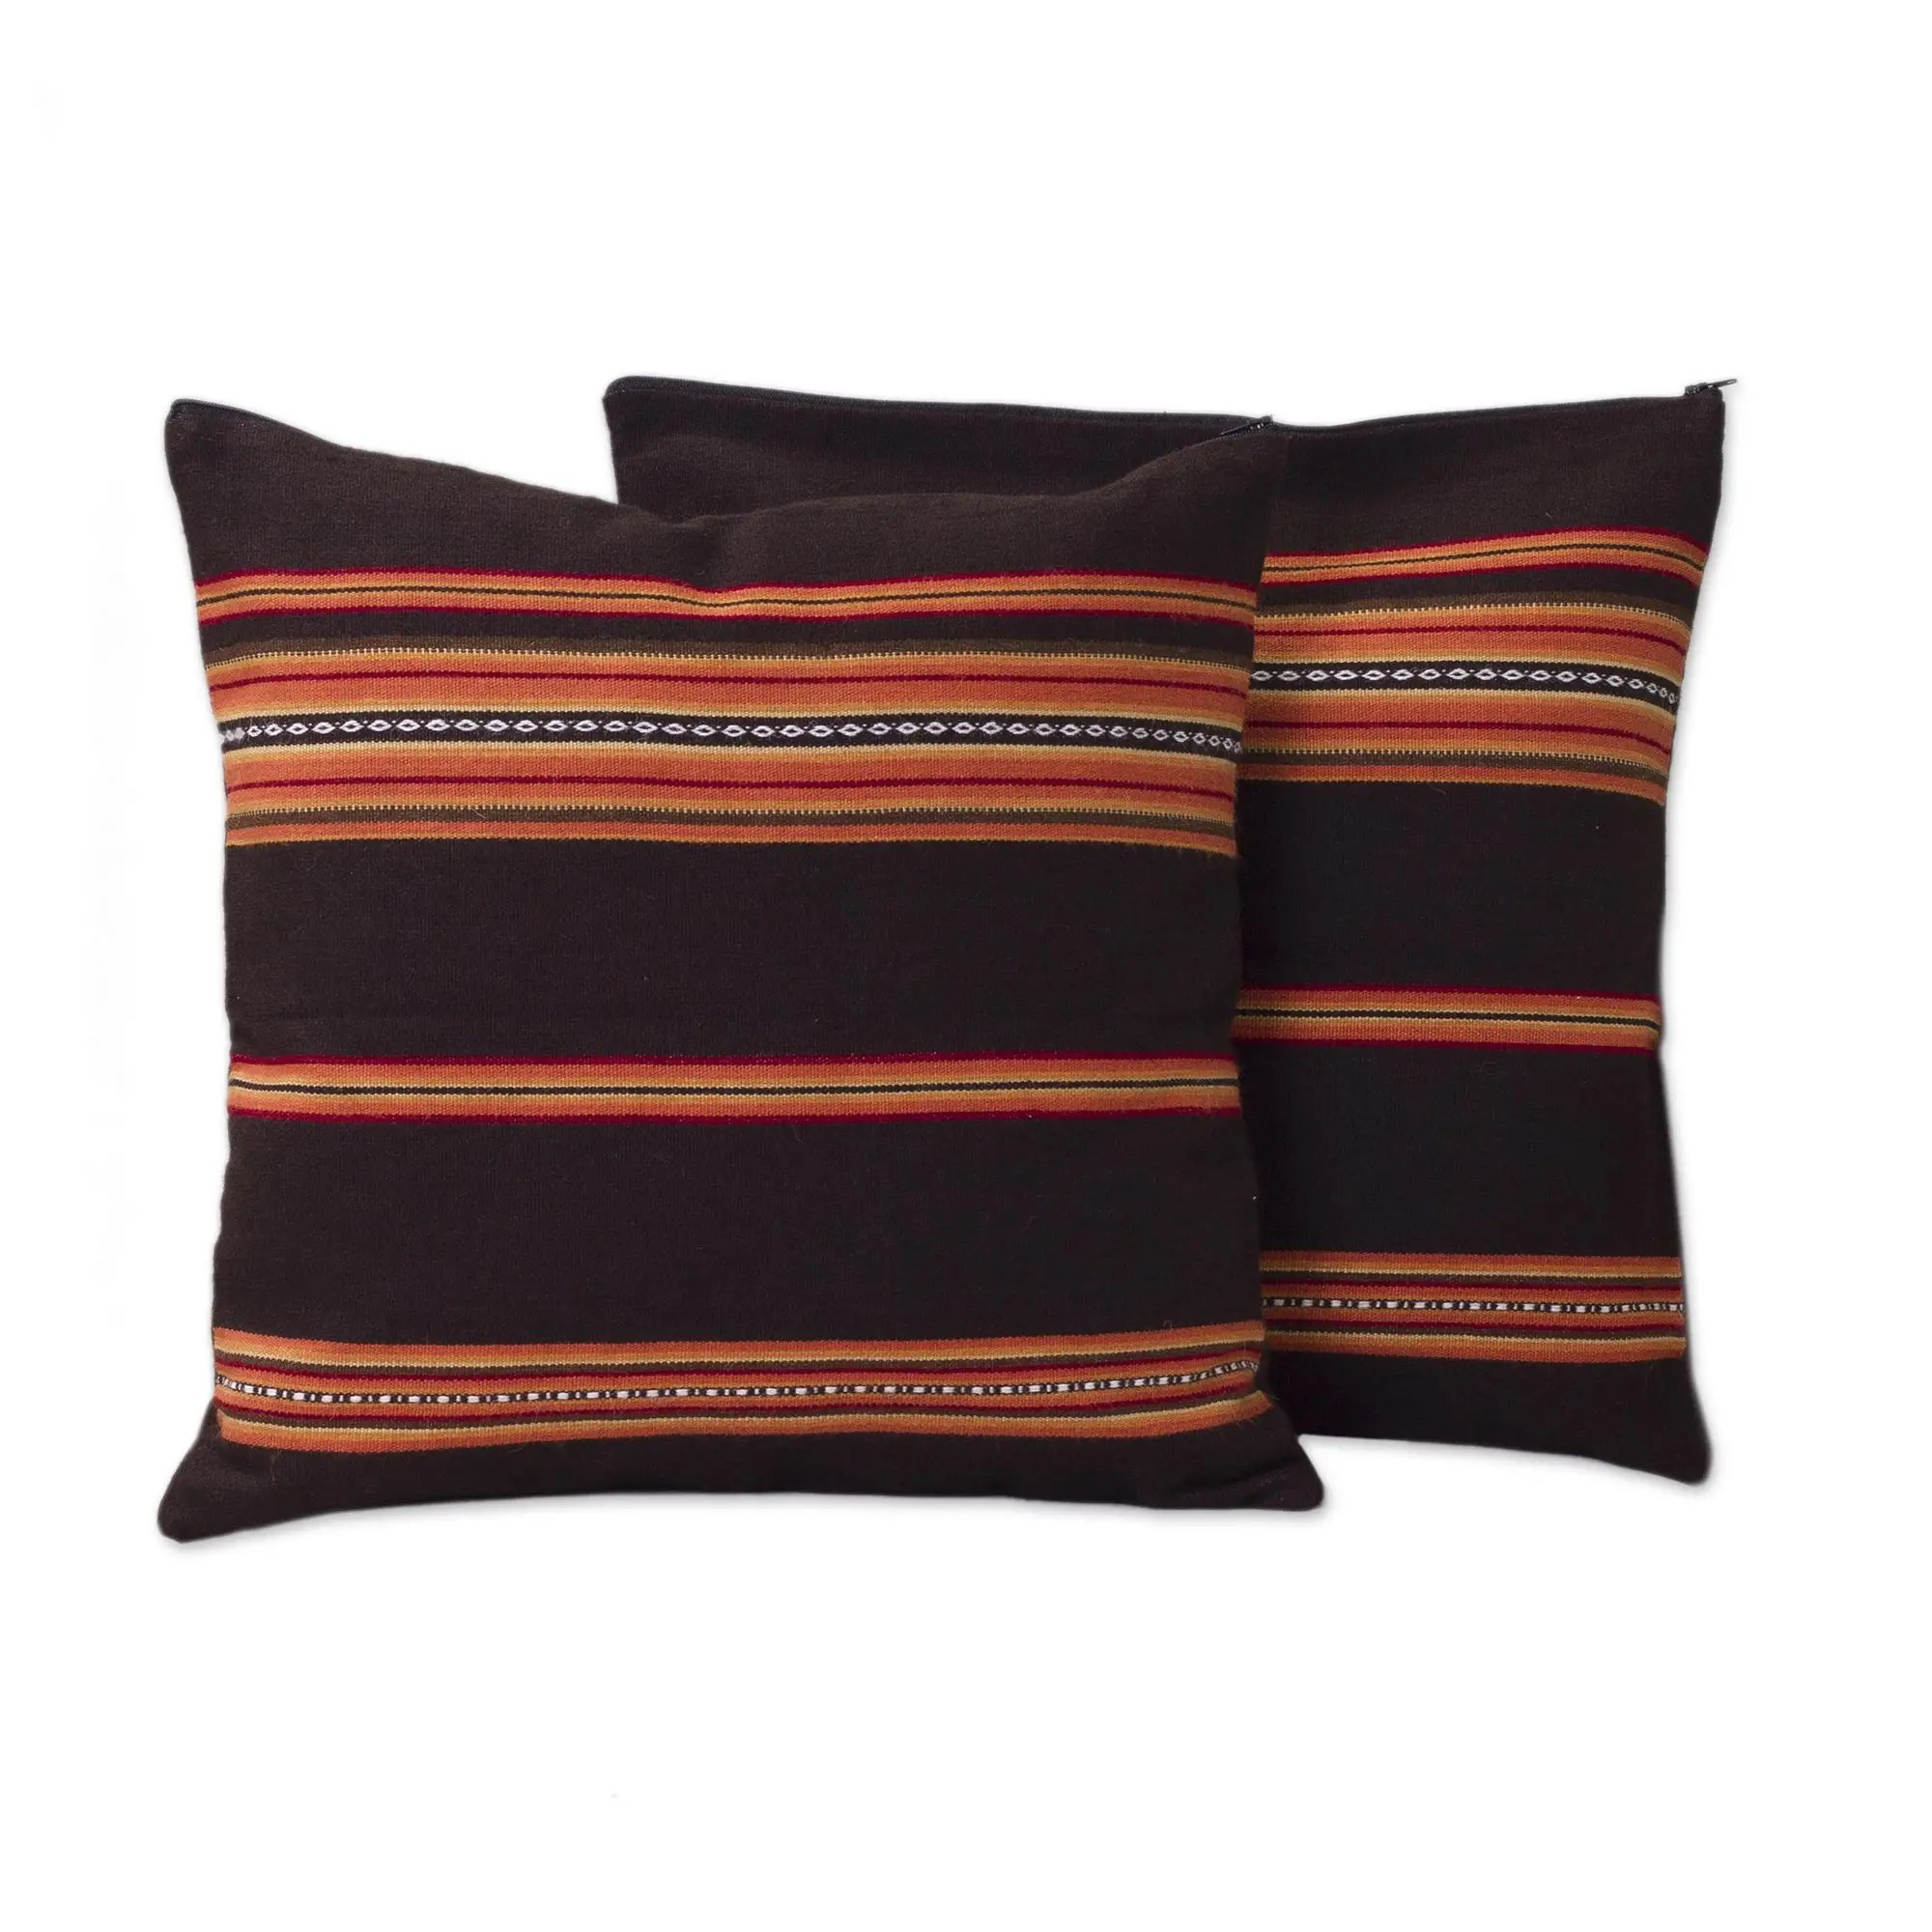 handwoven brown and orange cushion covers pair quechua girl